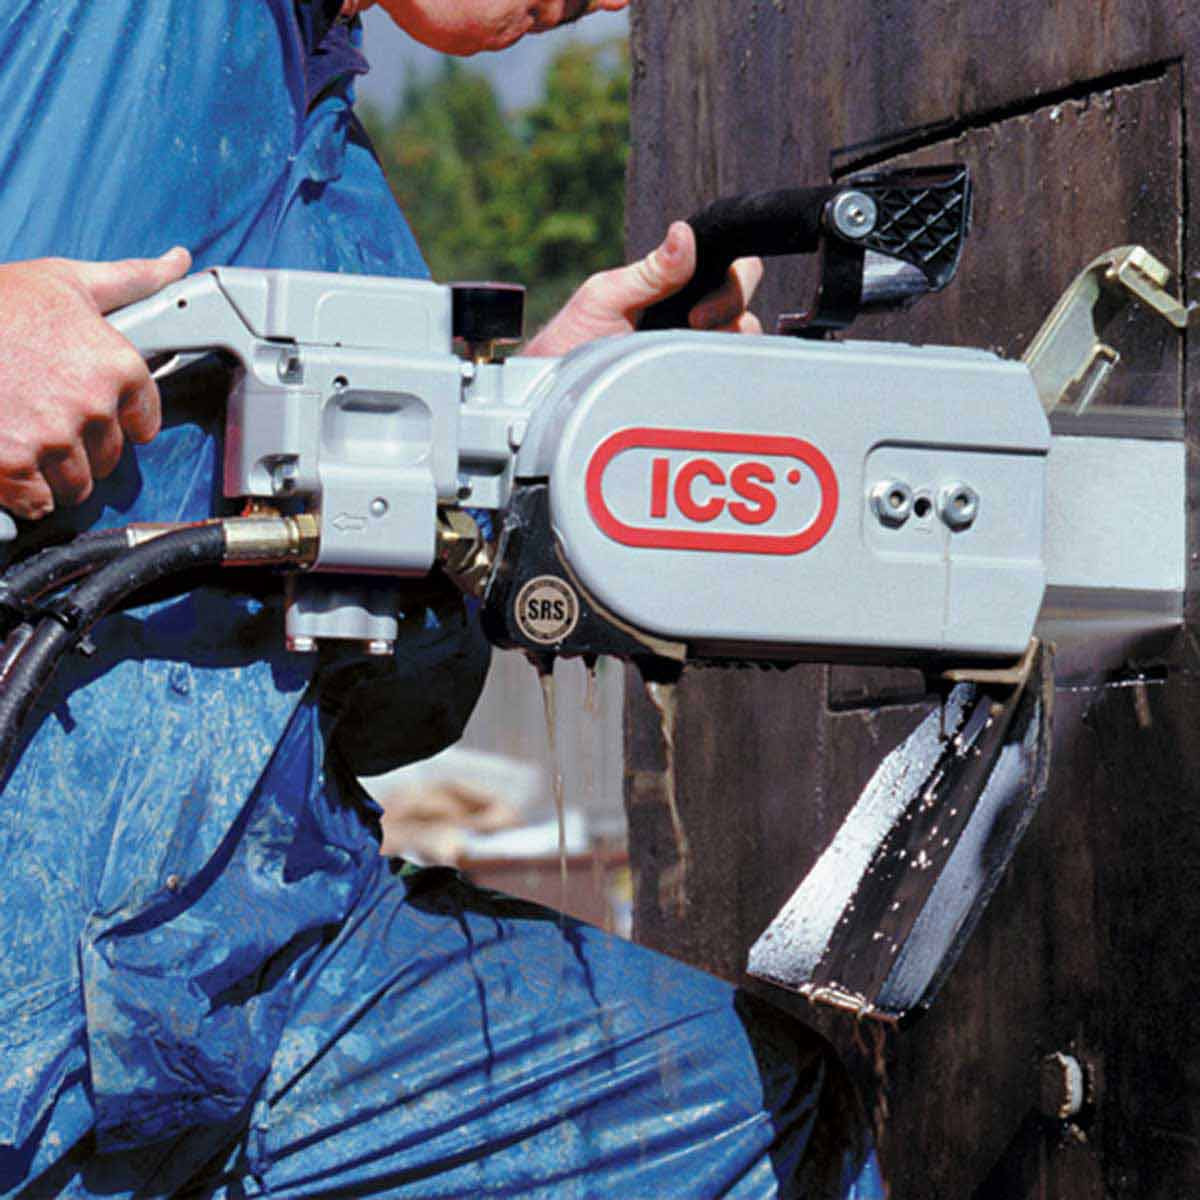 ICS Chain saw concrete cutting